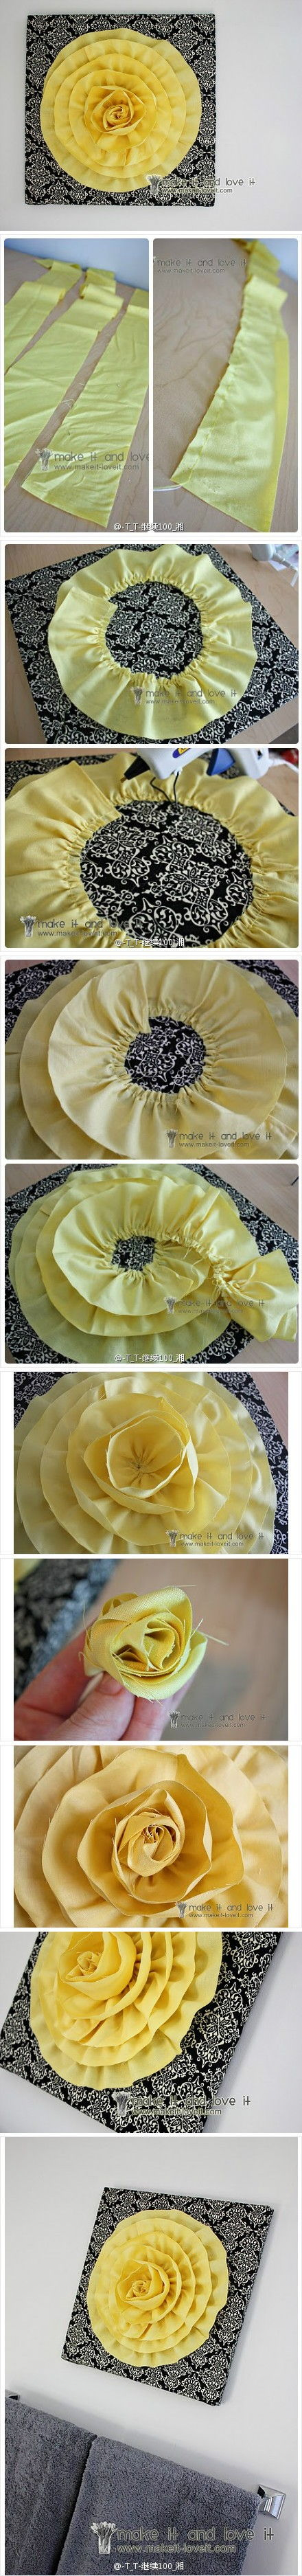 How to make 3D Cloth Flower Decoration step by step DIY tutorial instructions